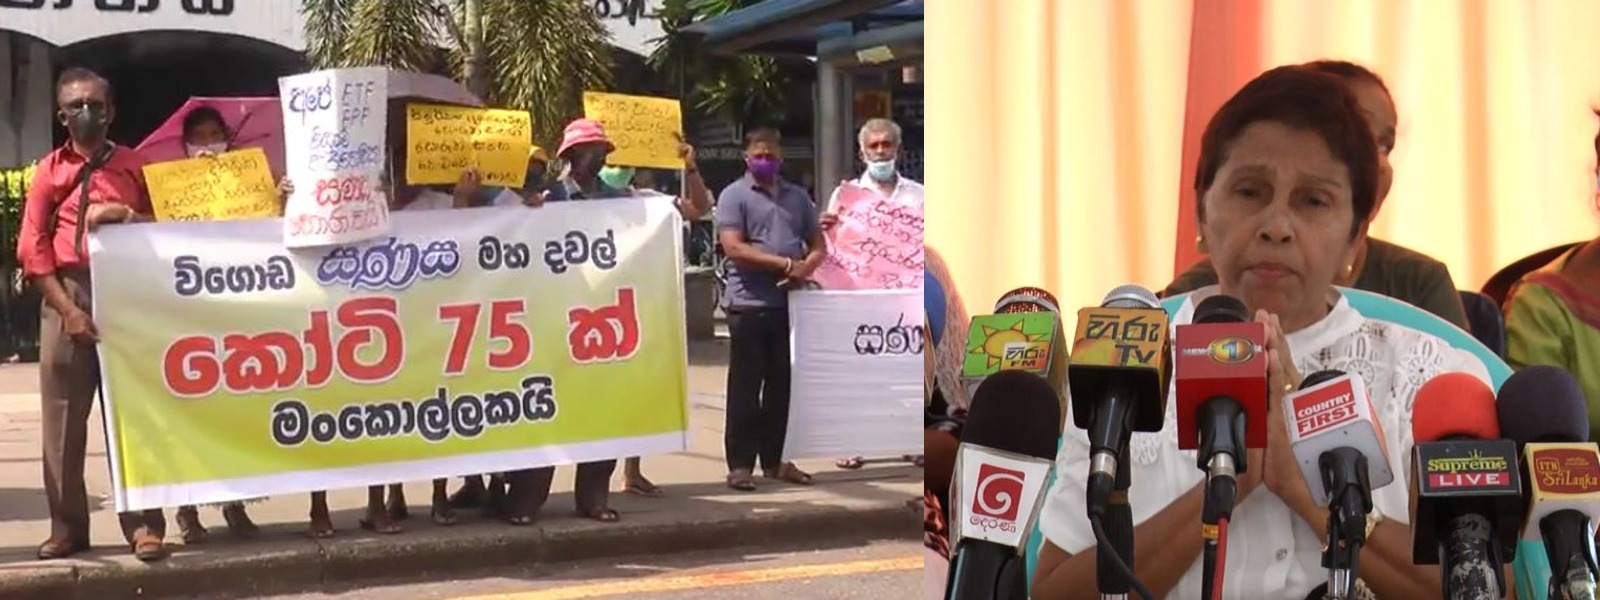 ETI & SANASA (Gampaha) depositors voice concerns over fraud